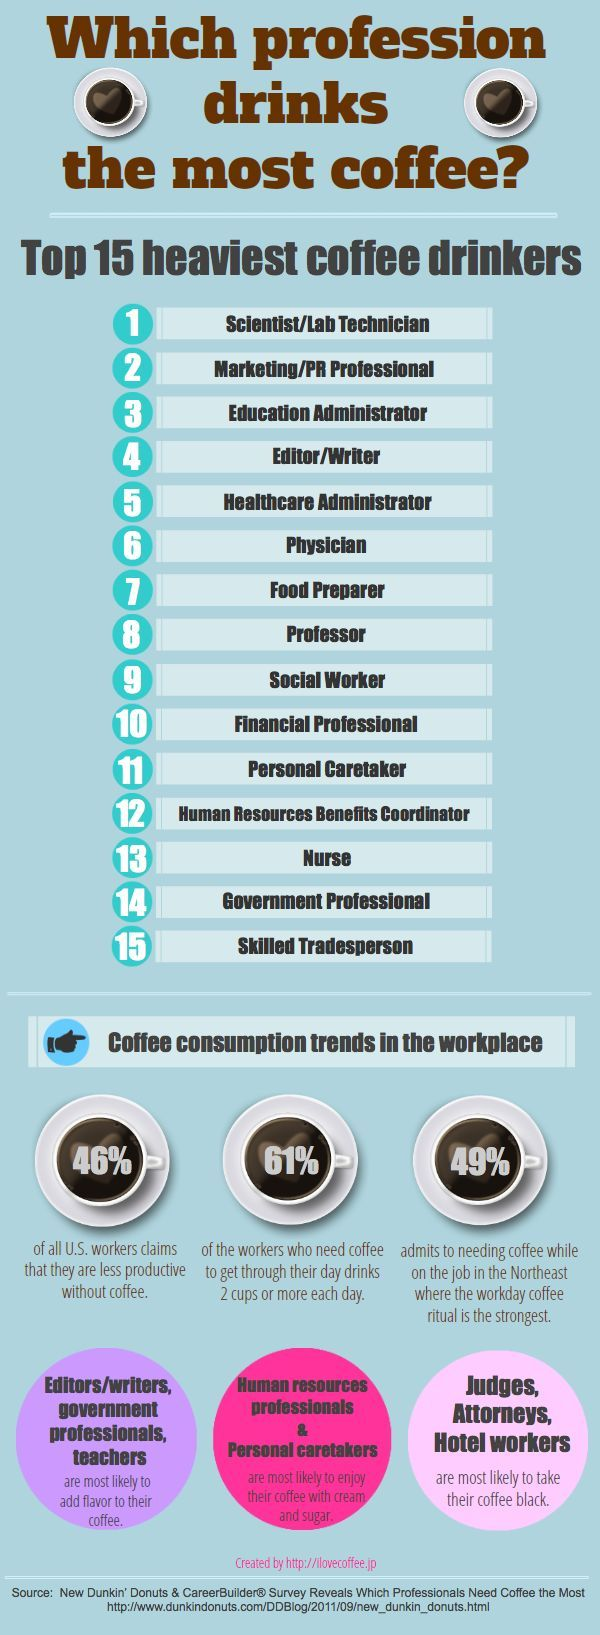 "Hmm, not sure I completely agree with the order or the jobs that drink the most coffee. But hey, maybe it's time to up your ""ranking?"""